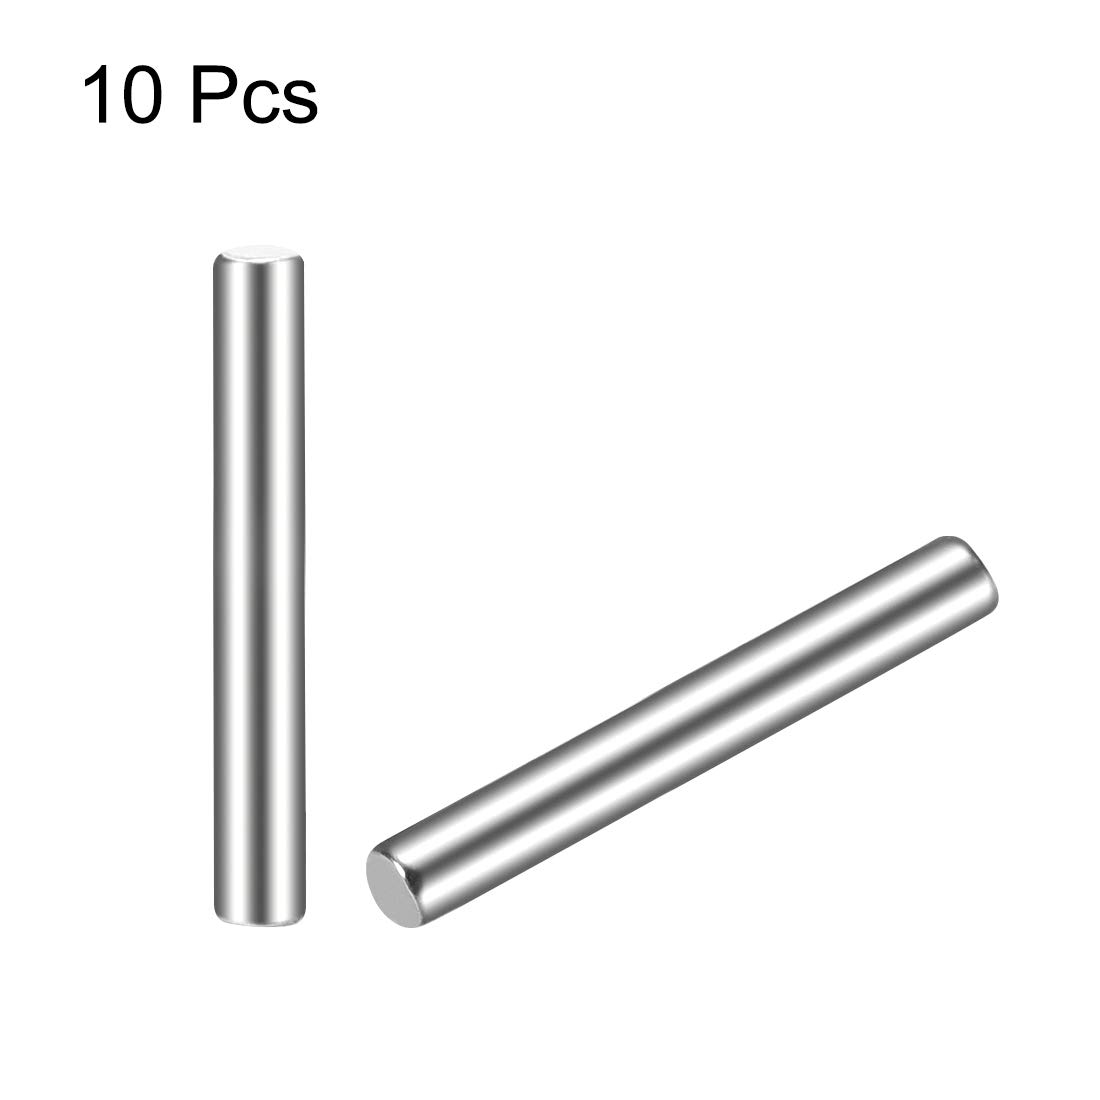 uxcell 10Pcs 1.5mm x 16mm Dowel Pin 304 Stainless Steel Cylindrical Shelf Support Pin Fasten Elements Silver Tone